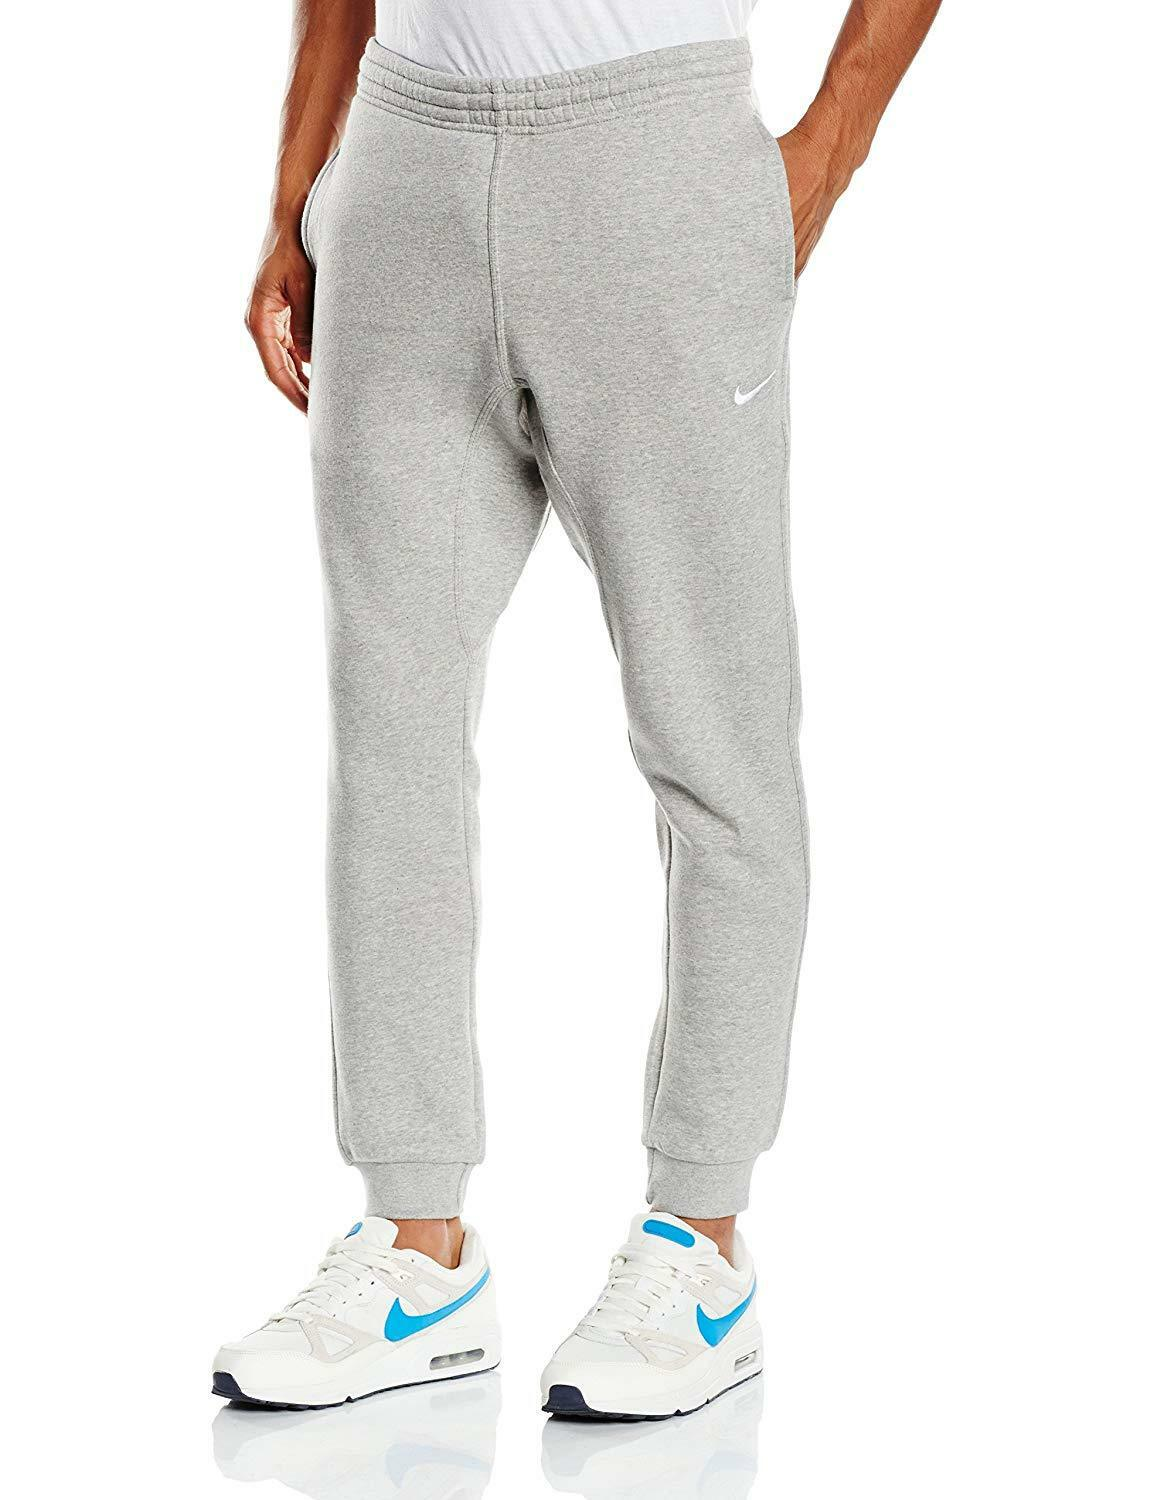 New With Tags Men's Nike Gym Muscle Slim Club Fleece Jogger Pants Sweatpants Grey